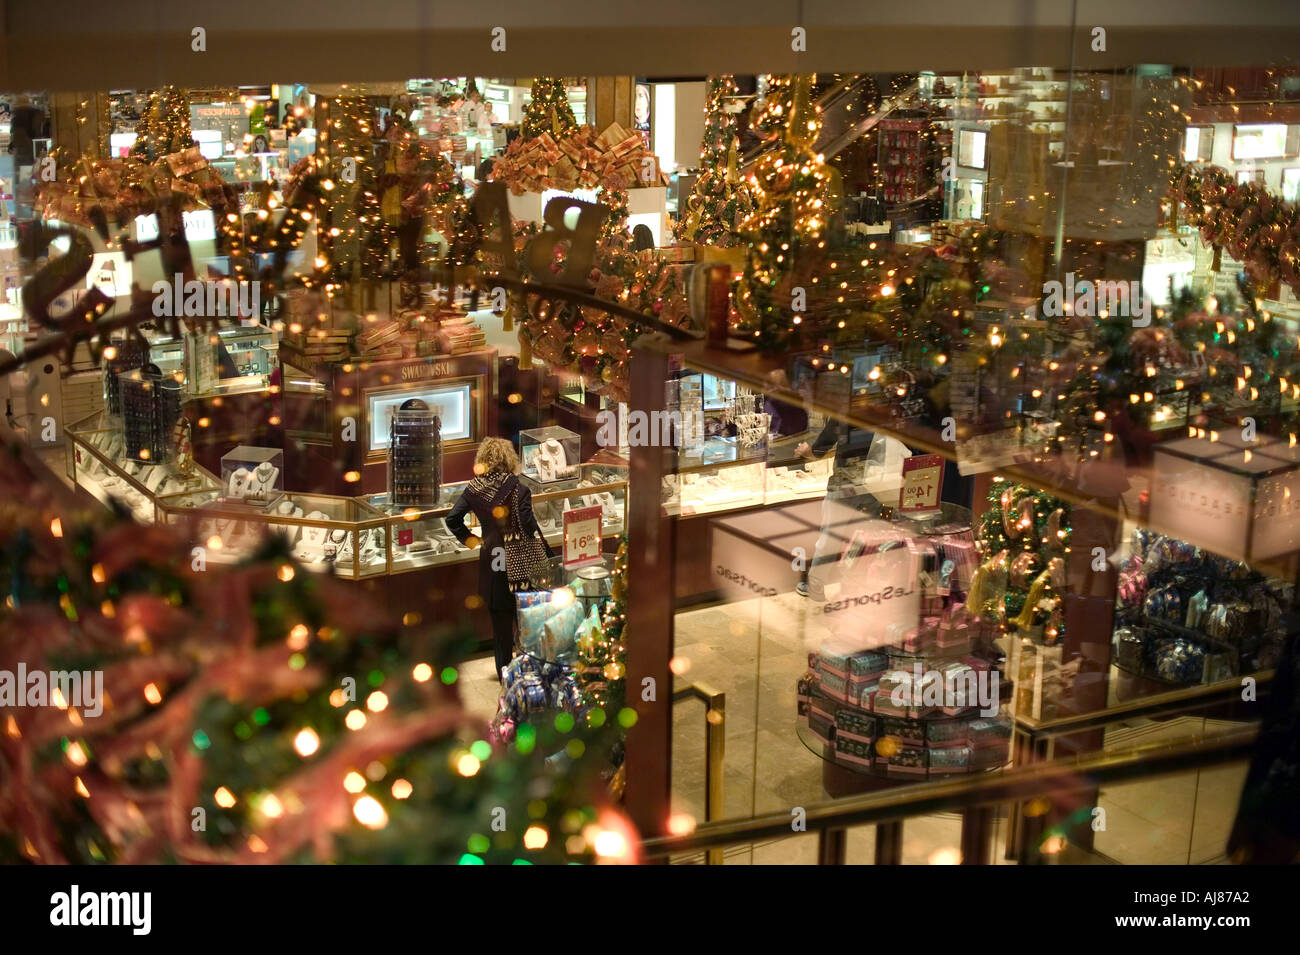 Christmas Holiday Decorations Inside Macy S Department Store At Herald  Square New York NY